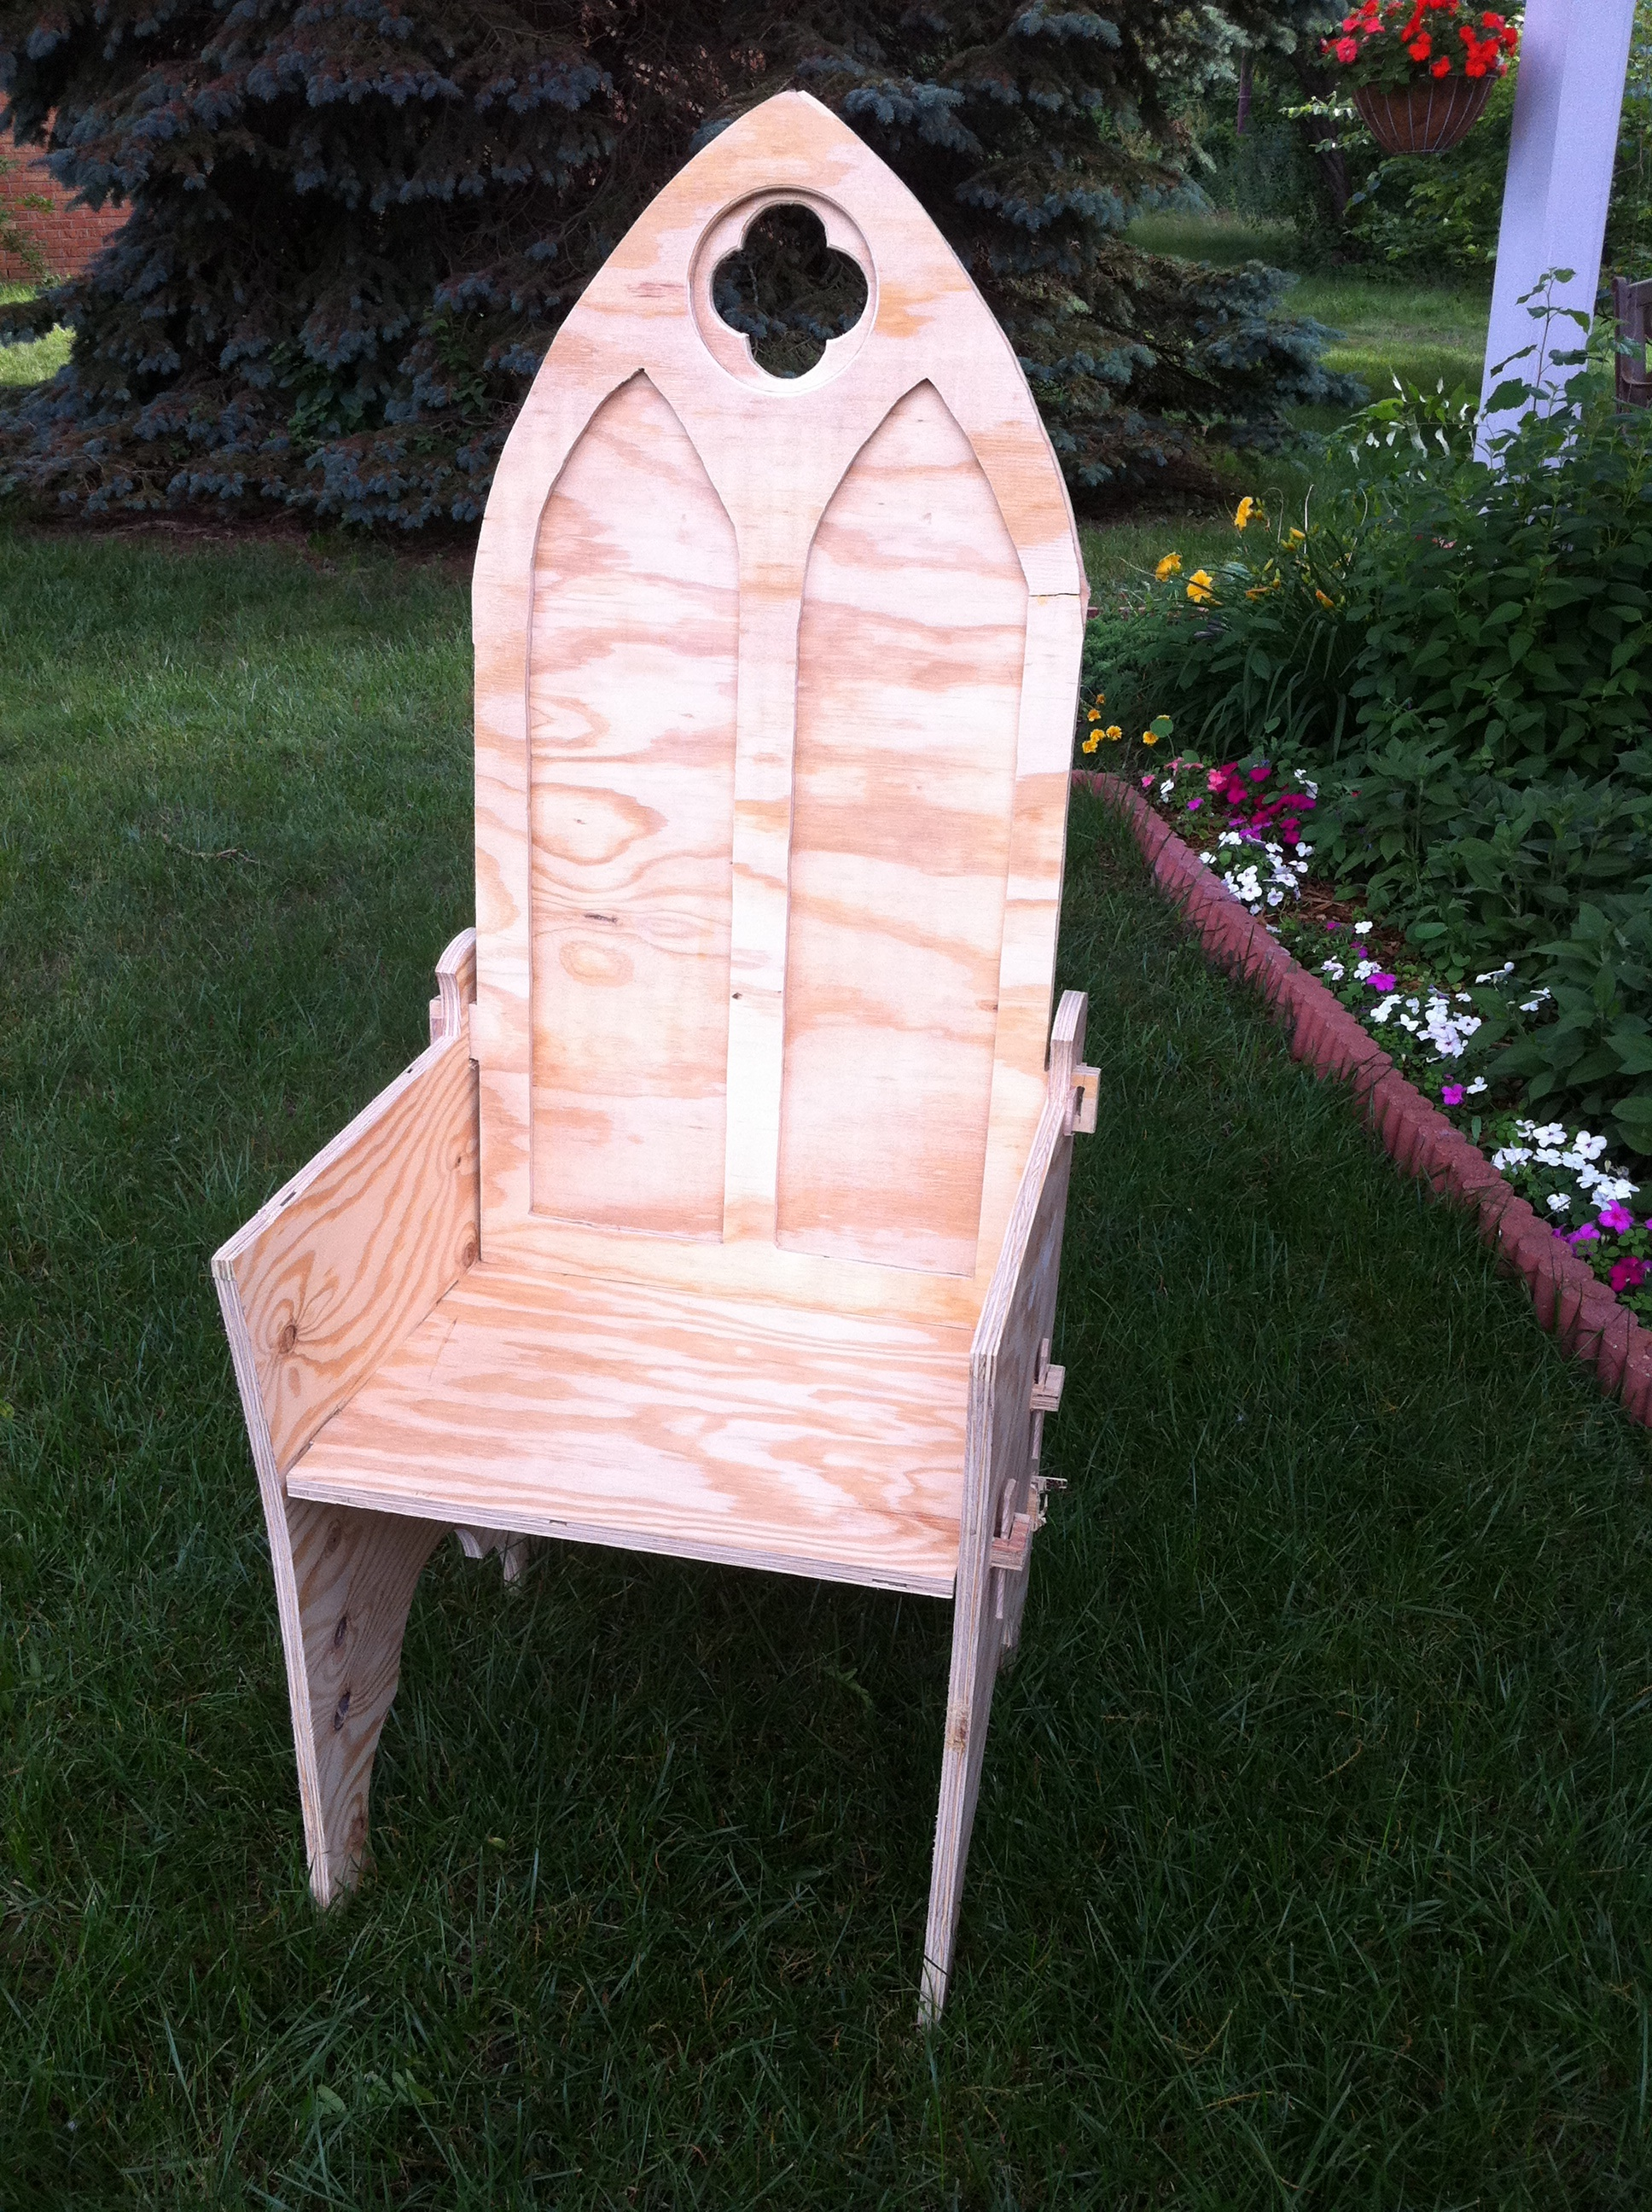 A Gothic Chair: Making Progress On My Camp Chair ...